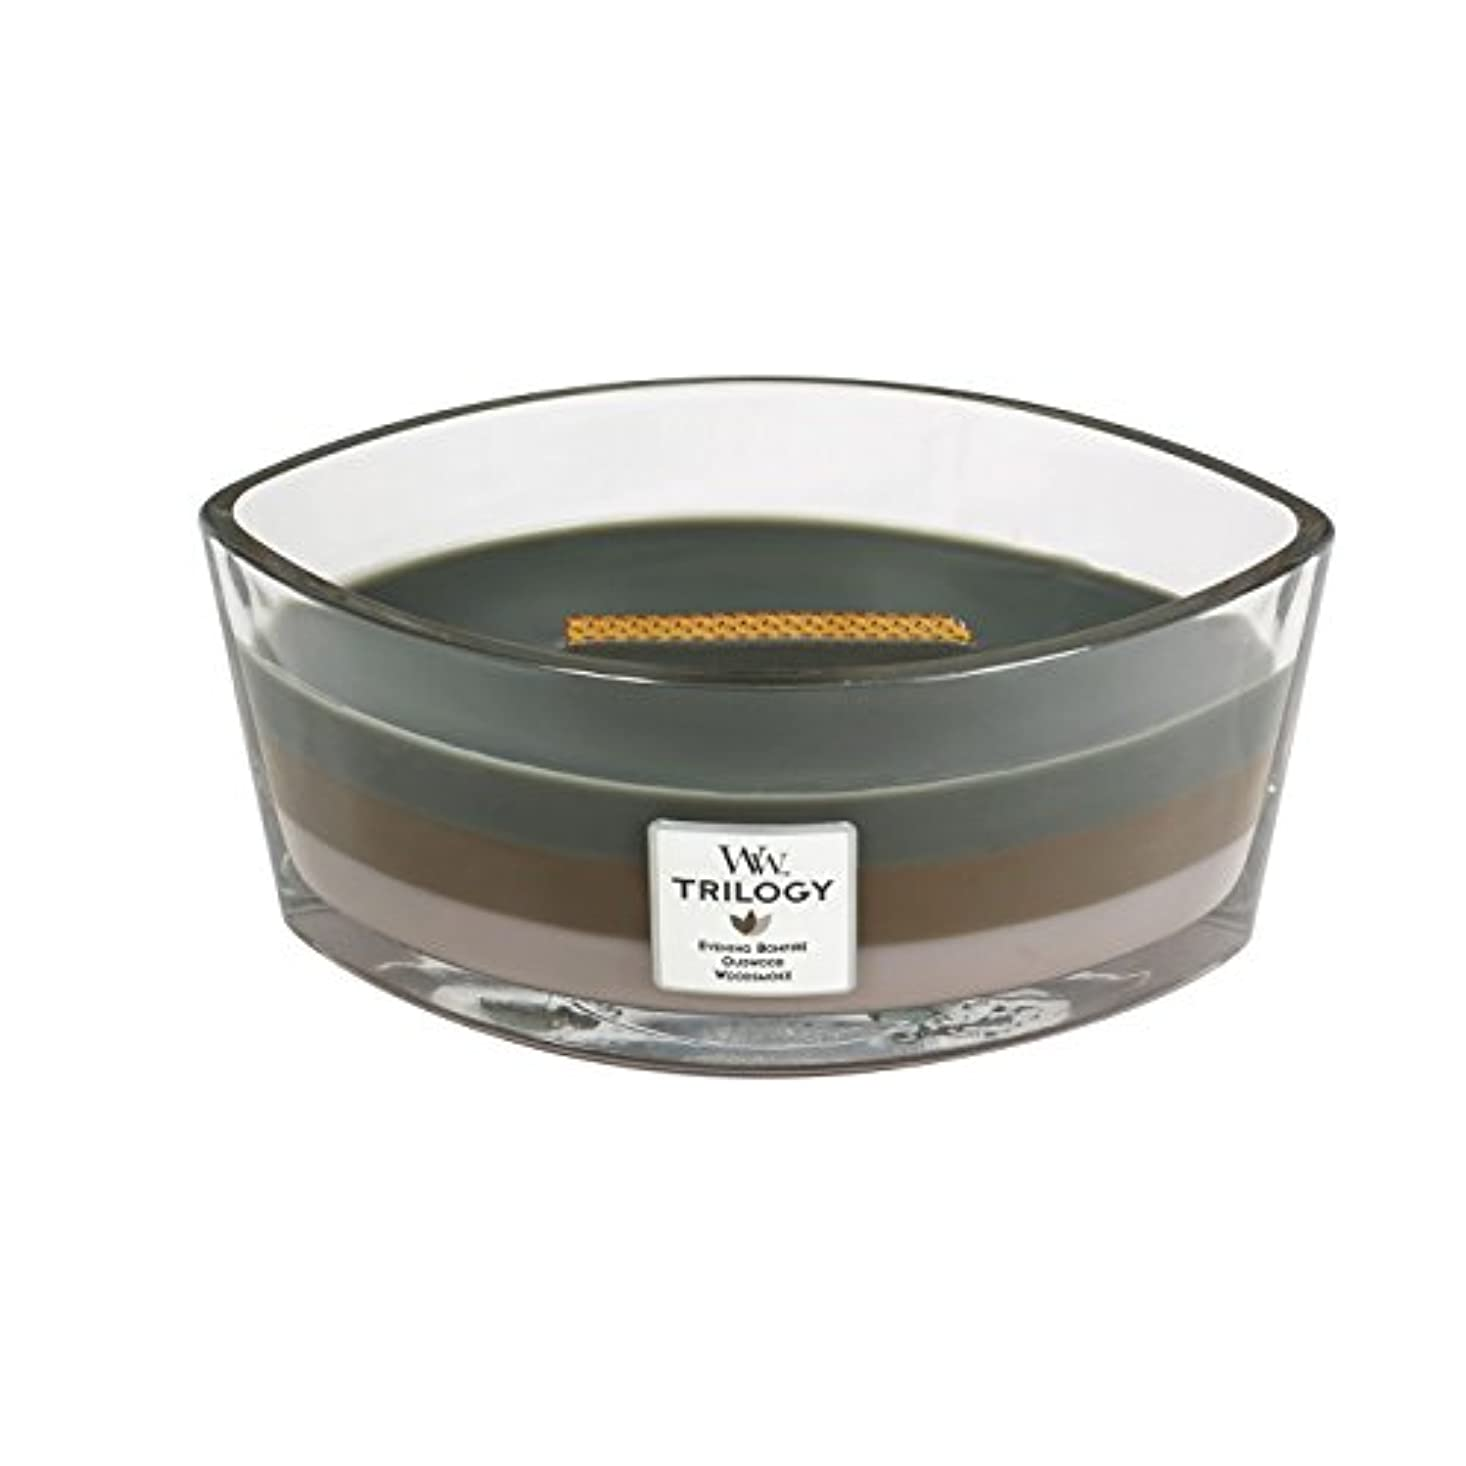 ライドサーキュレーション乱すWoodWick Trilogy cosy CABIN, 3-in-1 Highly Scented Candle, Ellipse Glass Jar with Original HearthWick Flame, Large...